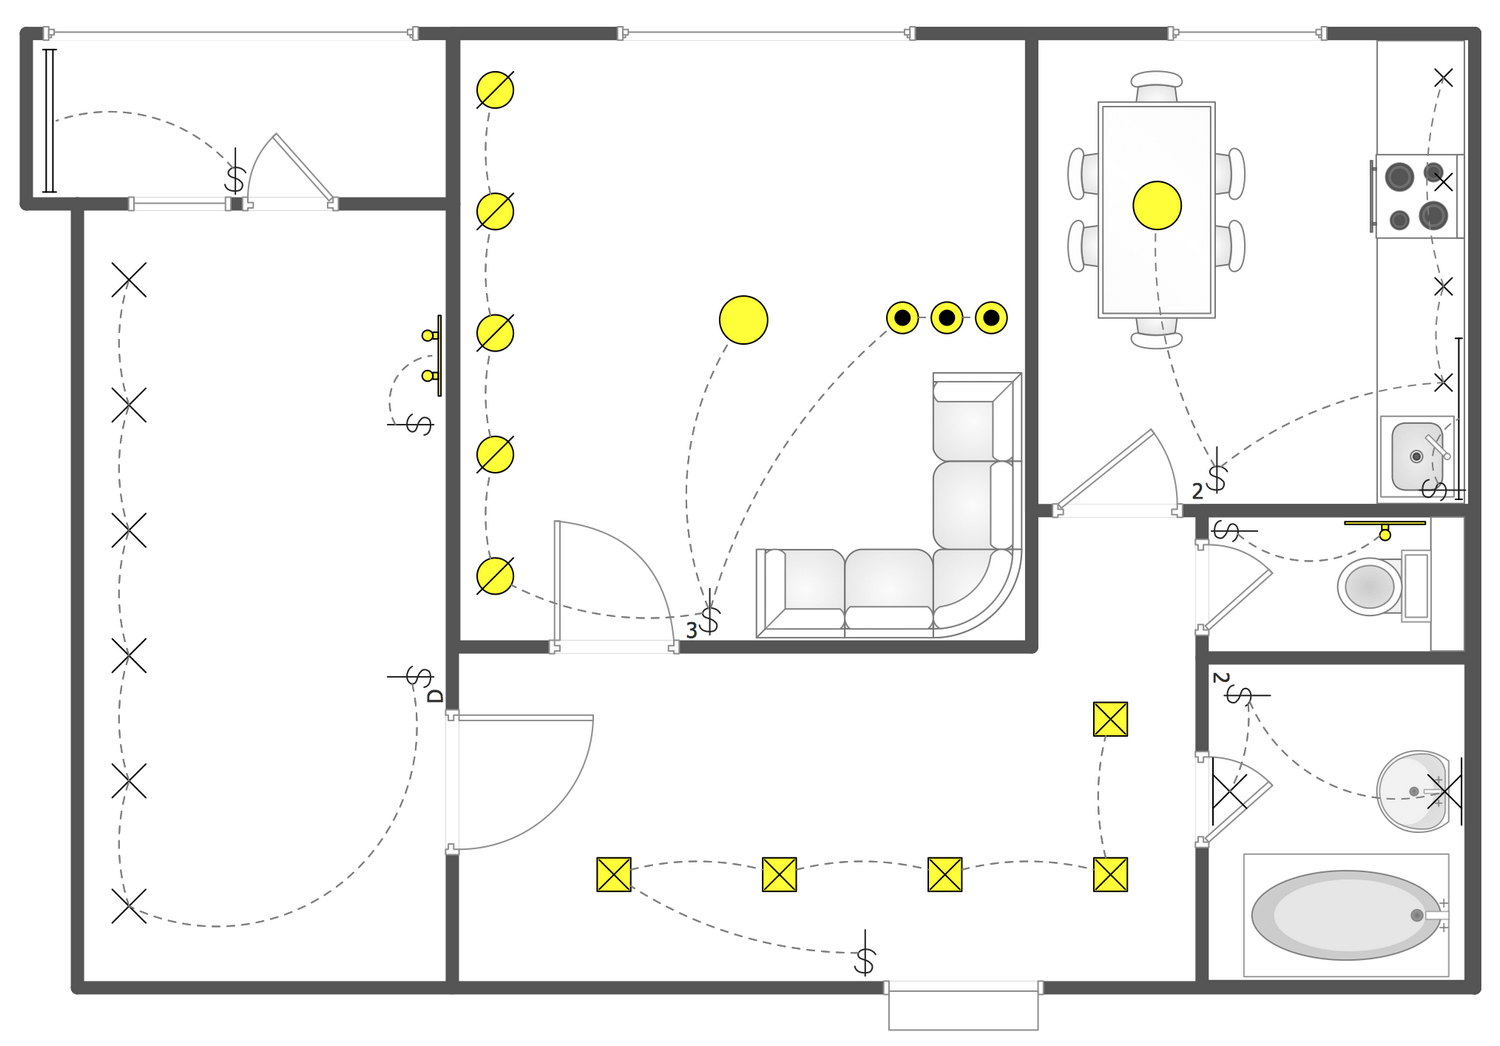 Ceiling Layout Plan